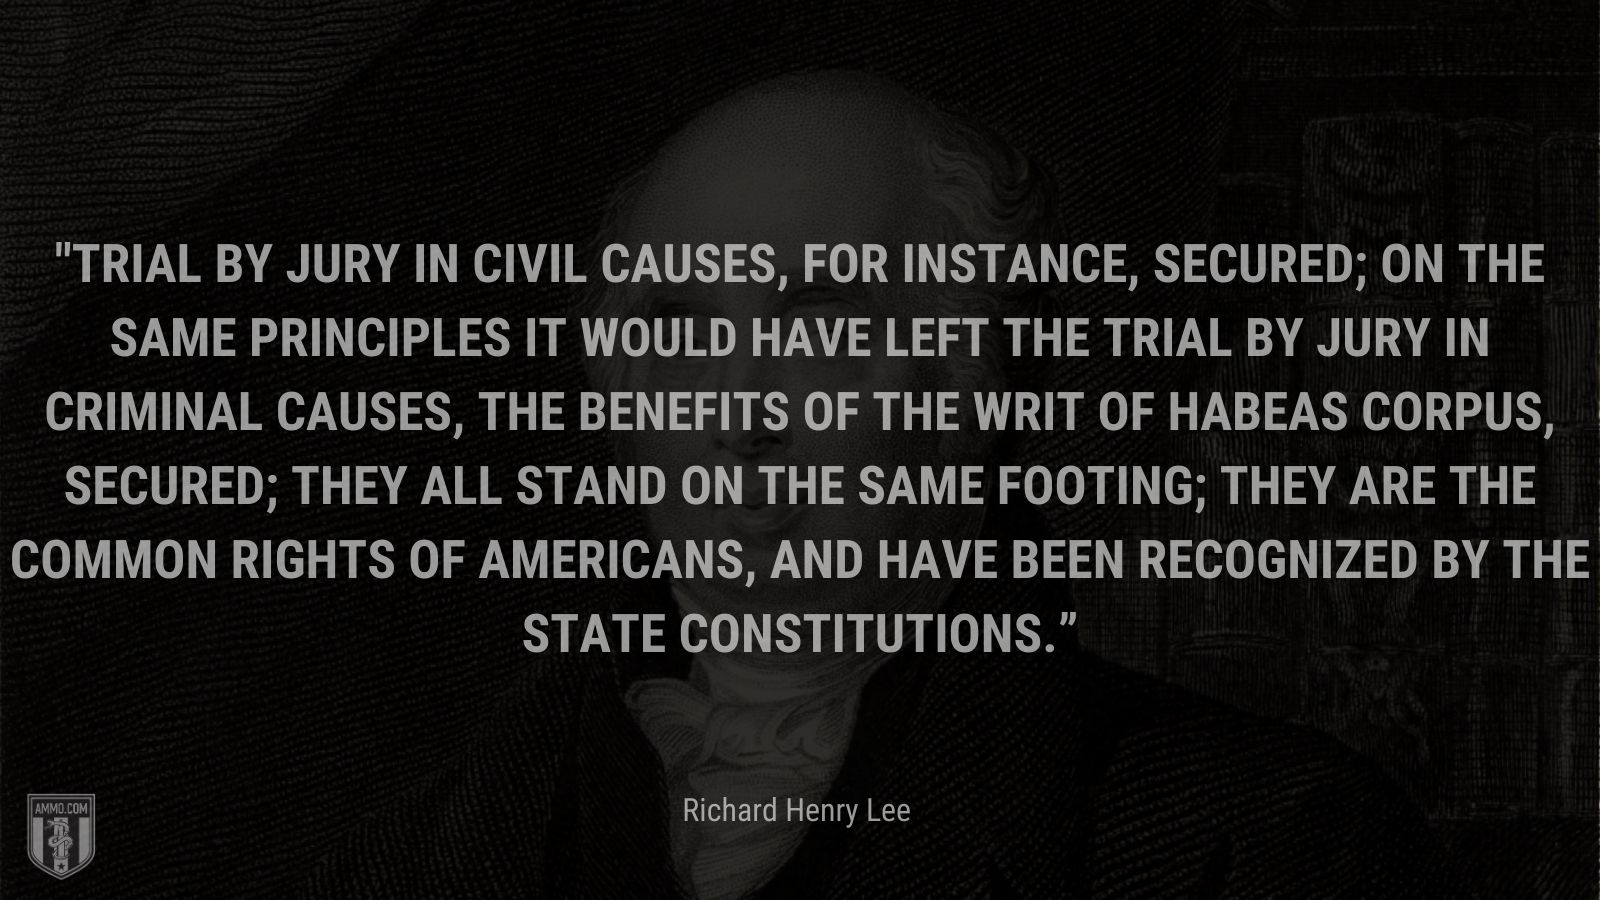 """""""Trial by jury in civil causes, for instance, secured; on the same principles it would have left the trial by jury in criminal causes, the benefits of the writ of habeas corpus, secured; they all stand on the same footing; they are the common rights of Americans, and have been recognized by the state constitutions."""" - Richard Henry Lee"""